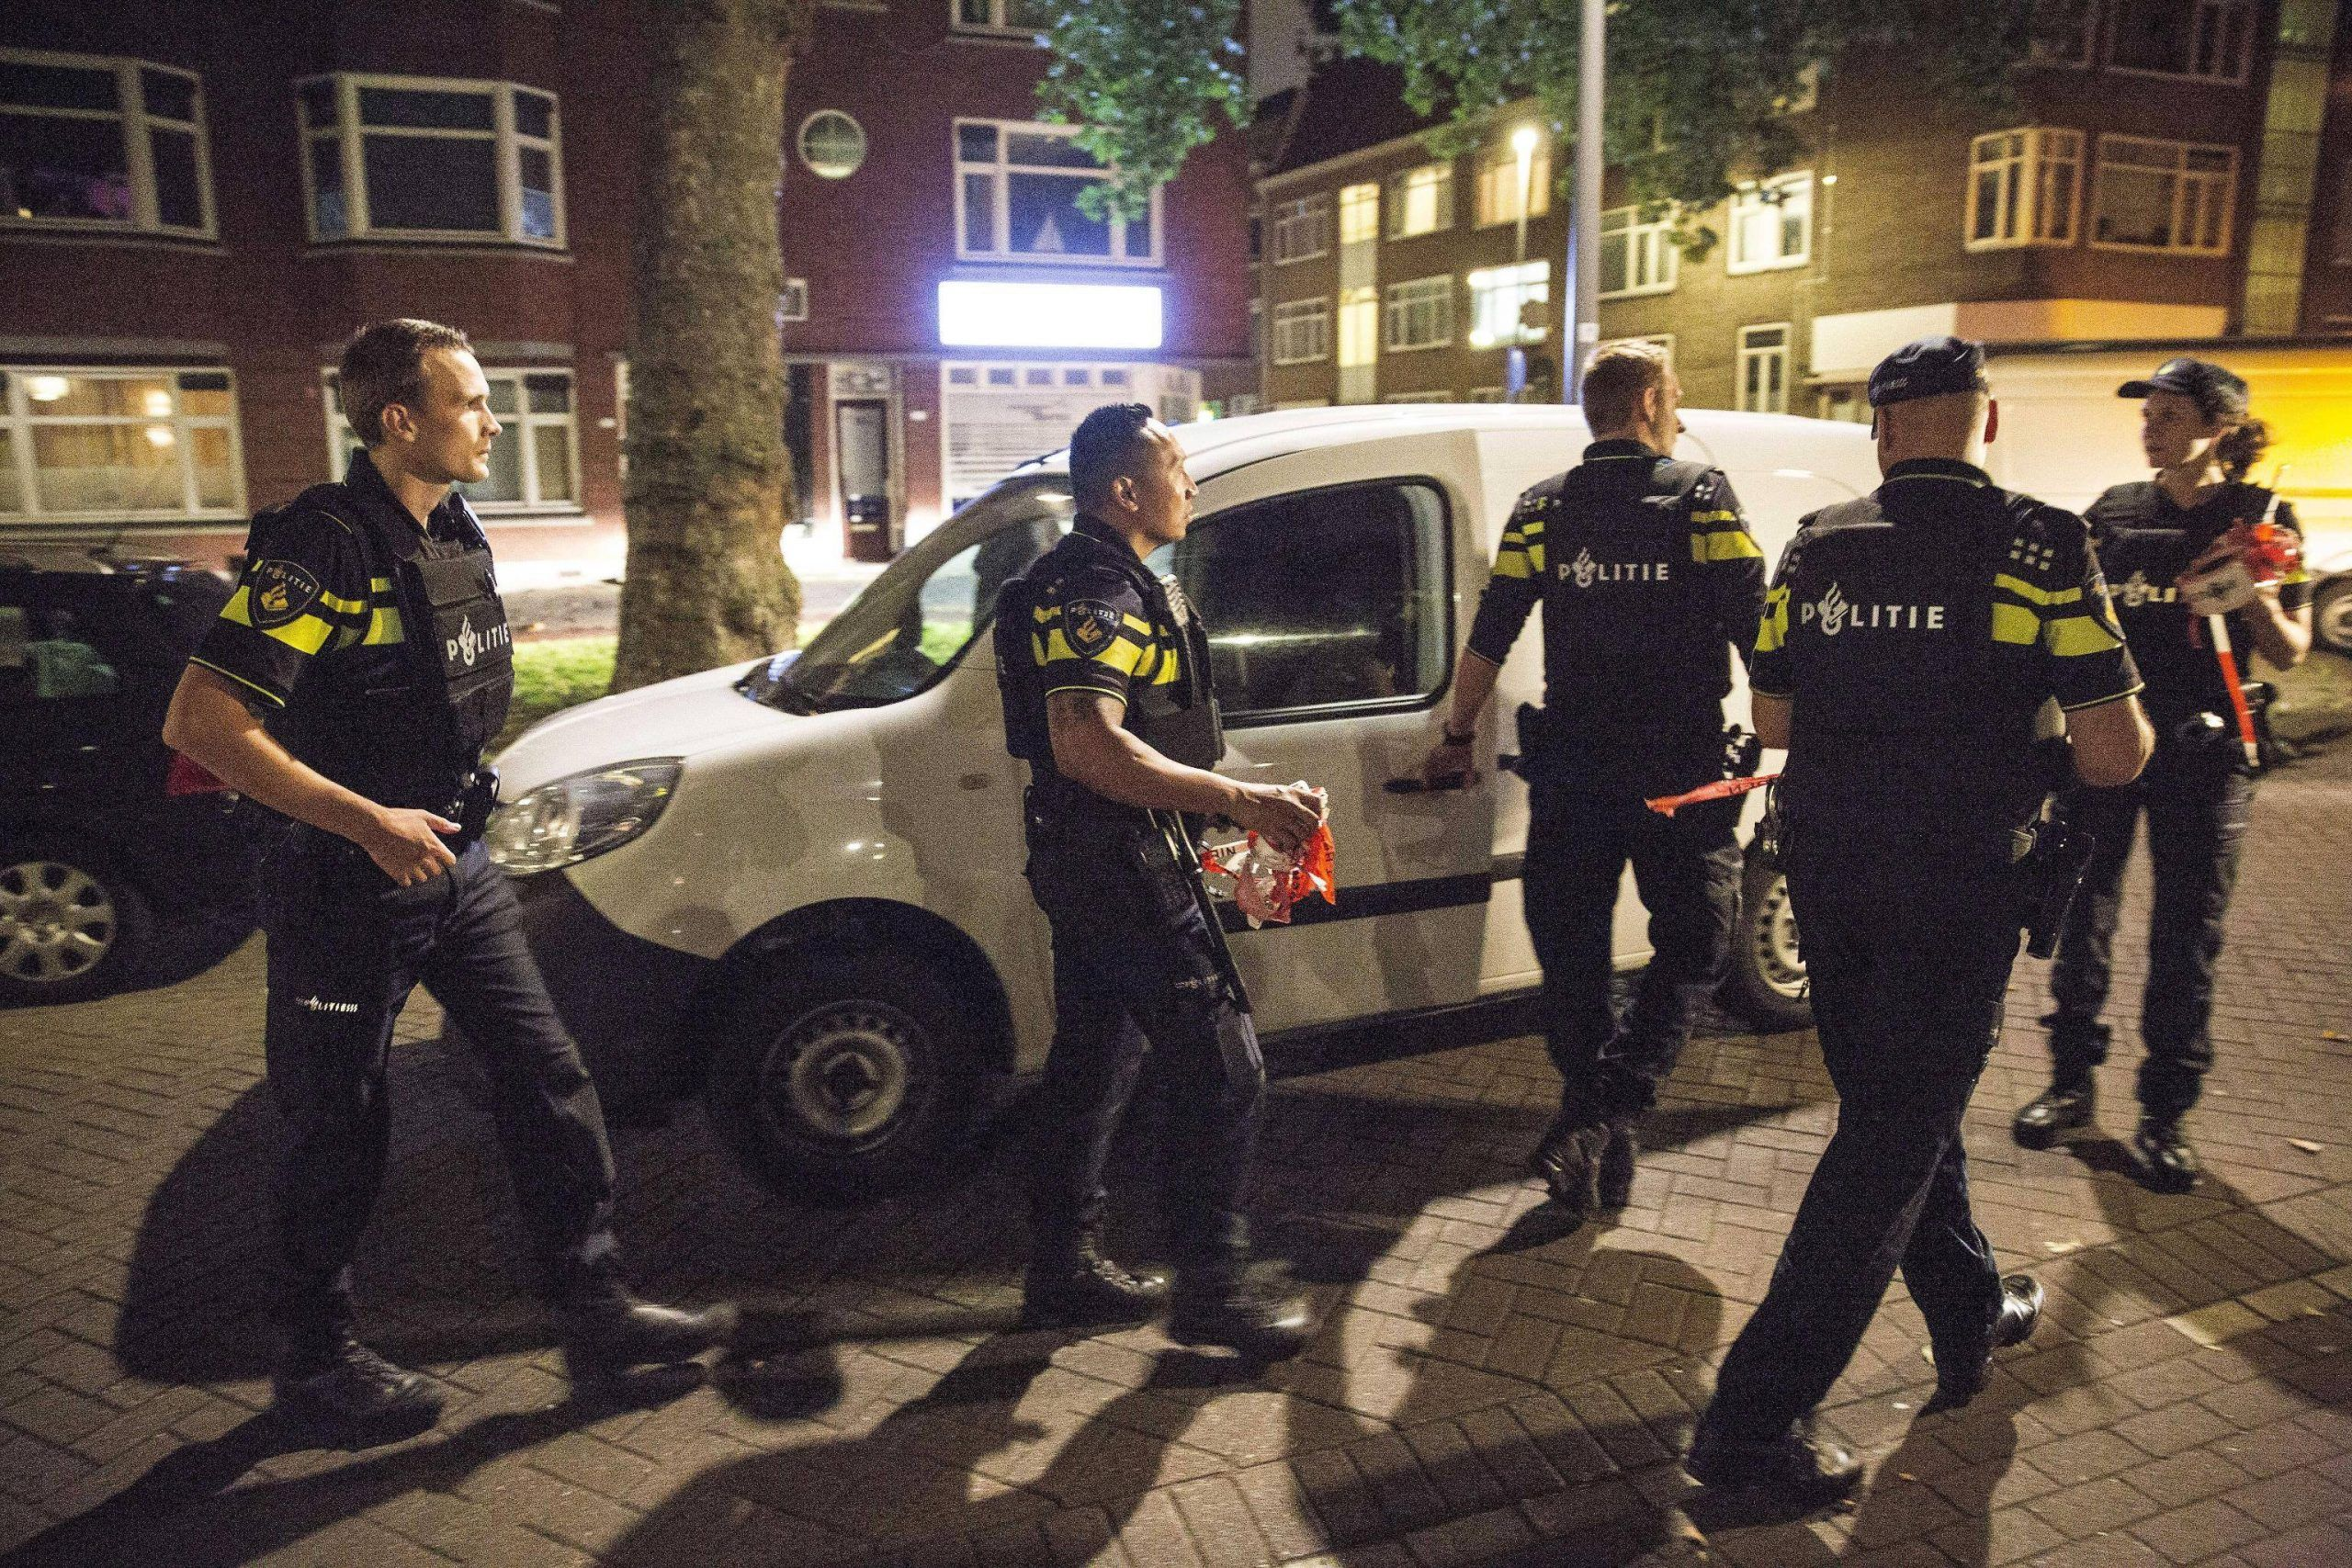 Terror threat after a van packed with gas canisters found in Rotterdam